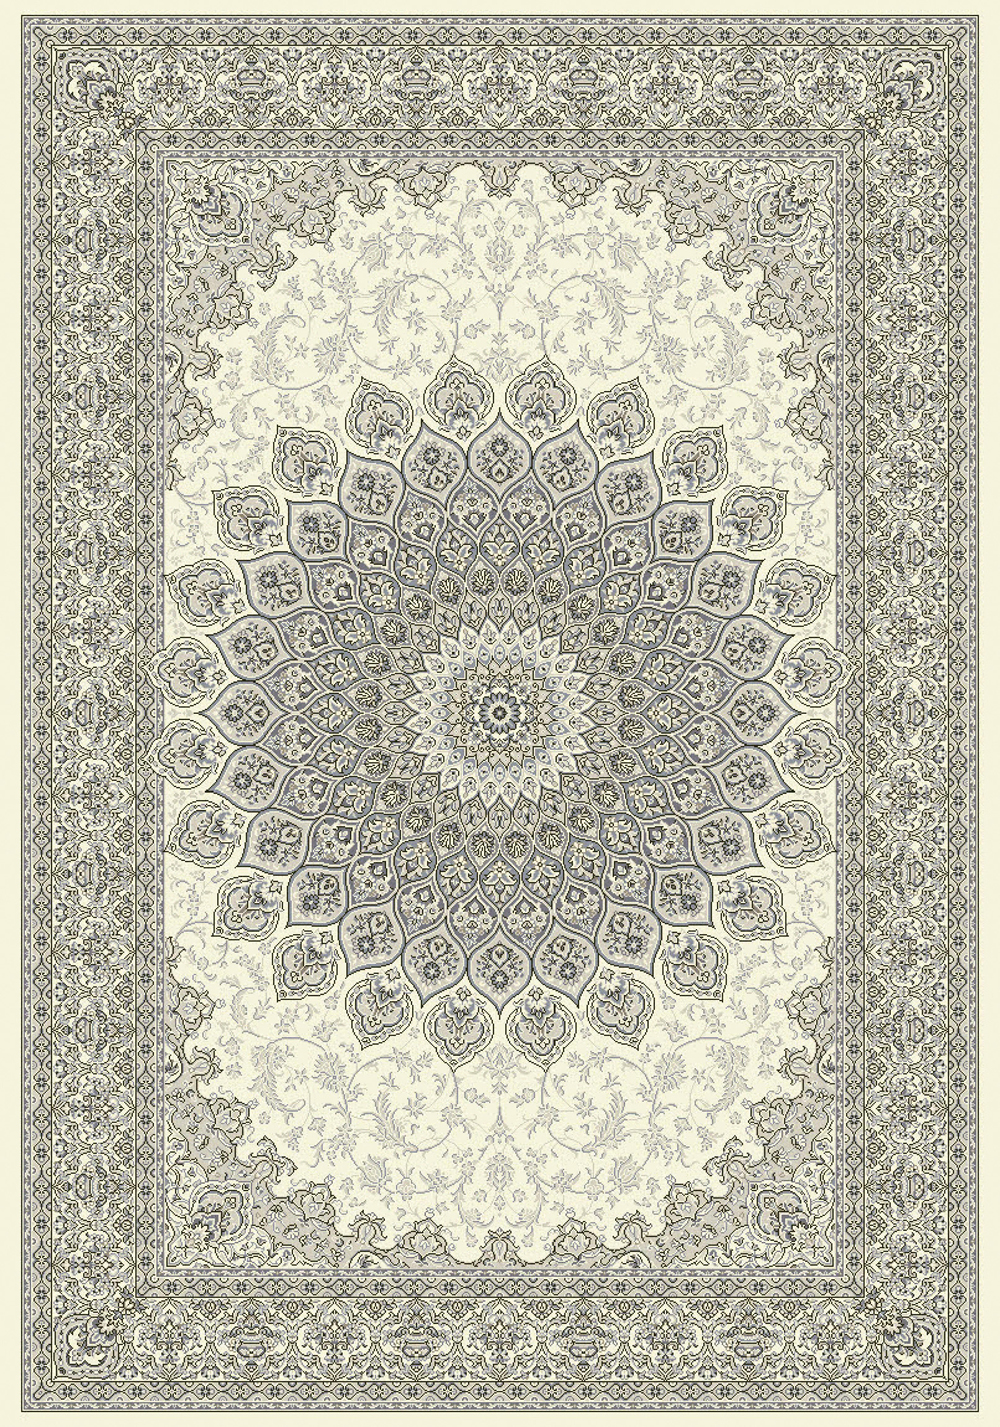 Dynamic ANCIENT GARDEN 57090 CREAM/GREY Rug